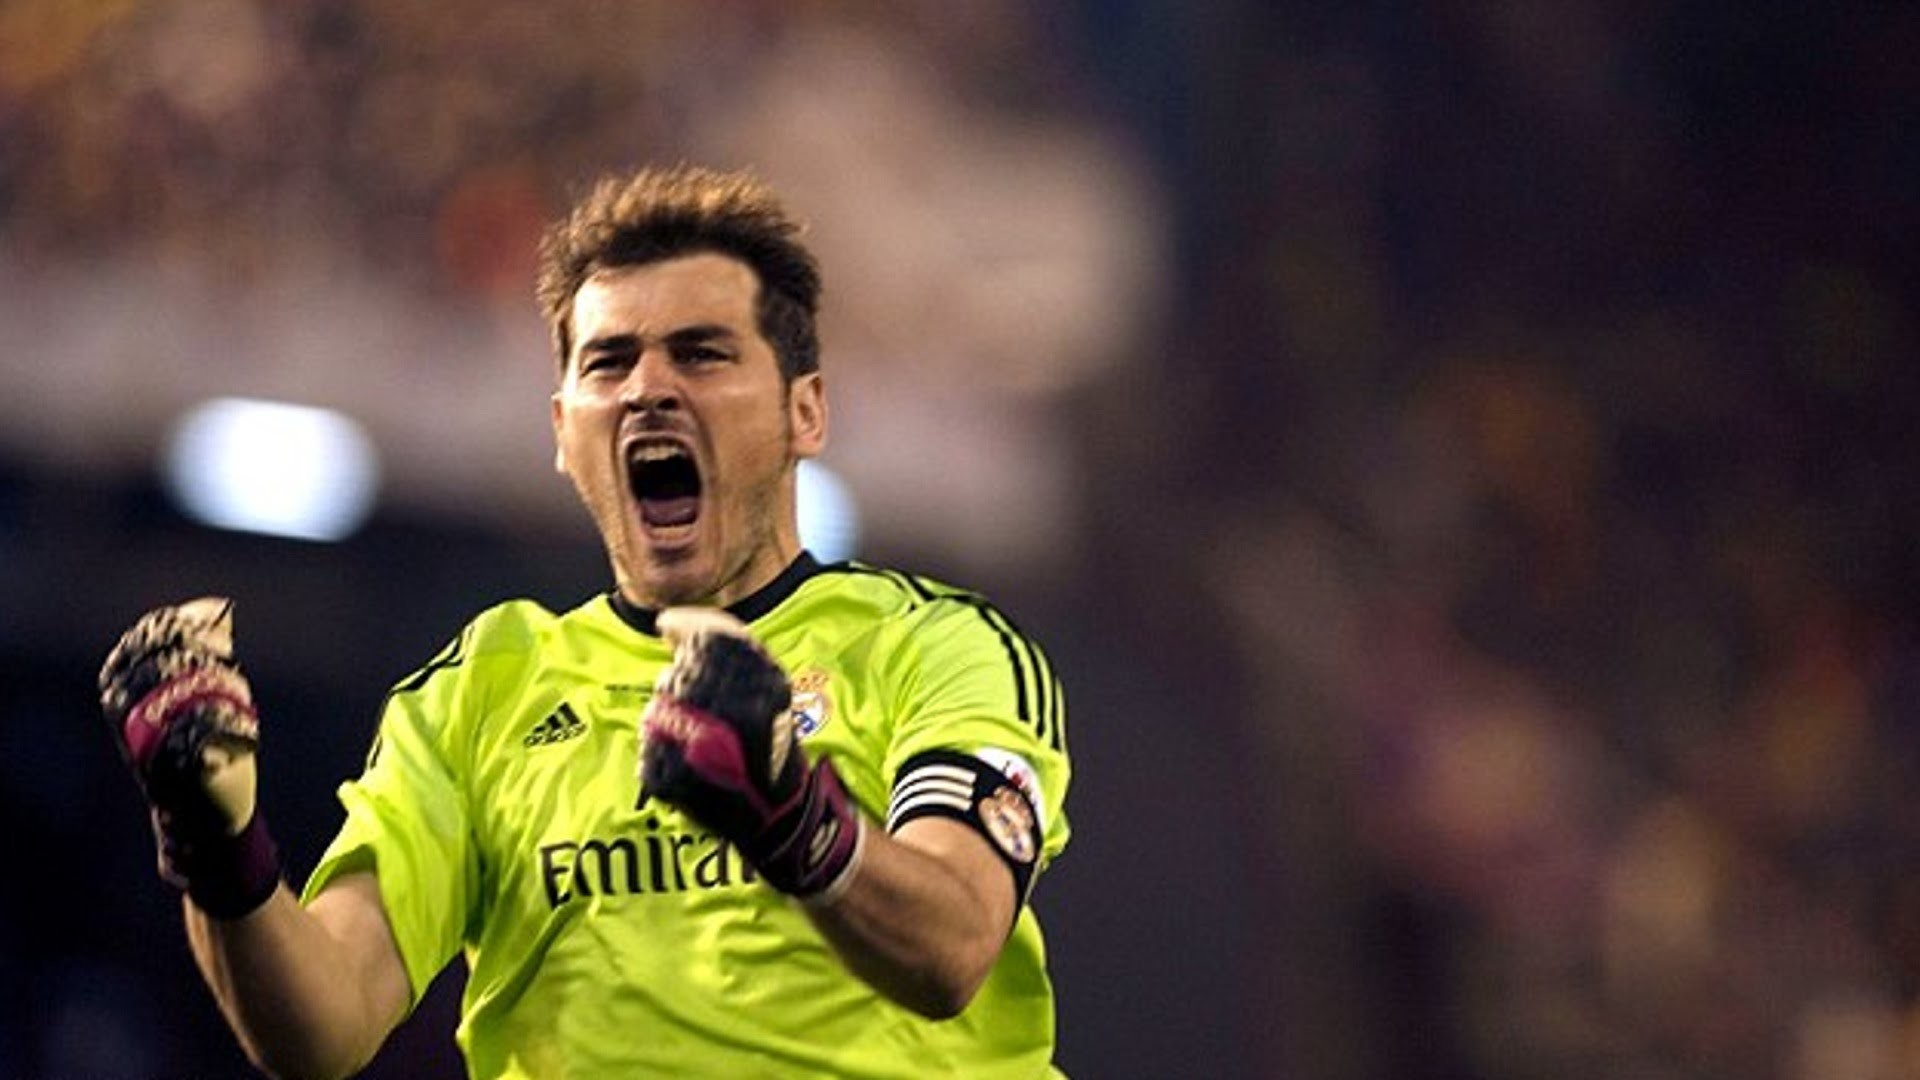 Real Madrid Iphone 4 Wallpaper Iker Casillas Wallpapers 69 Images